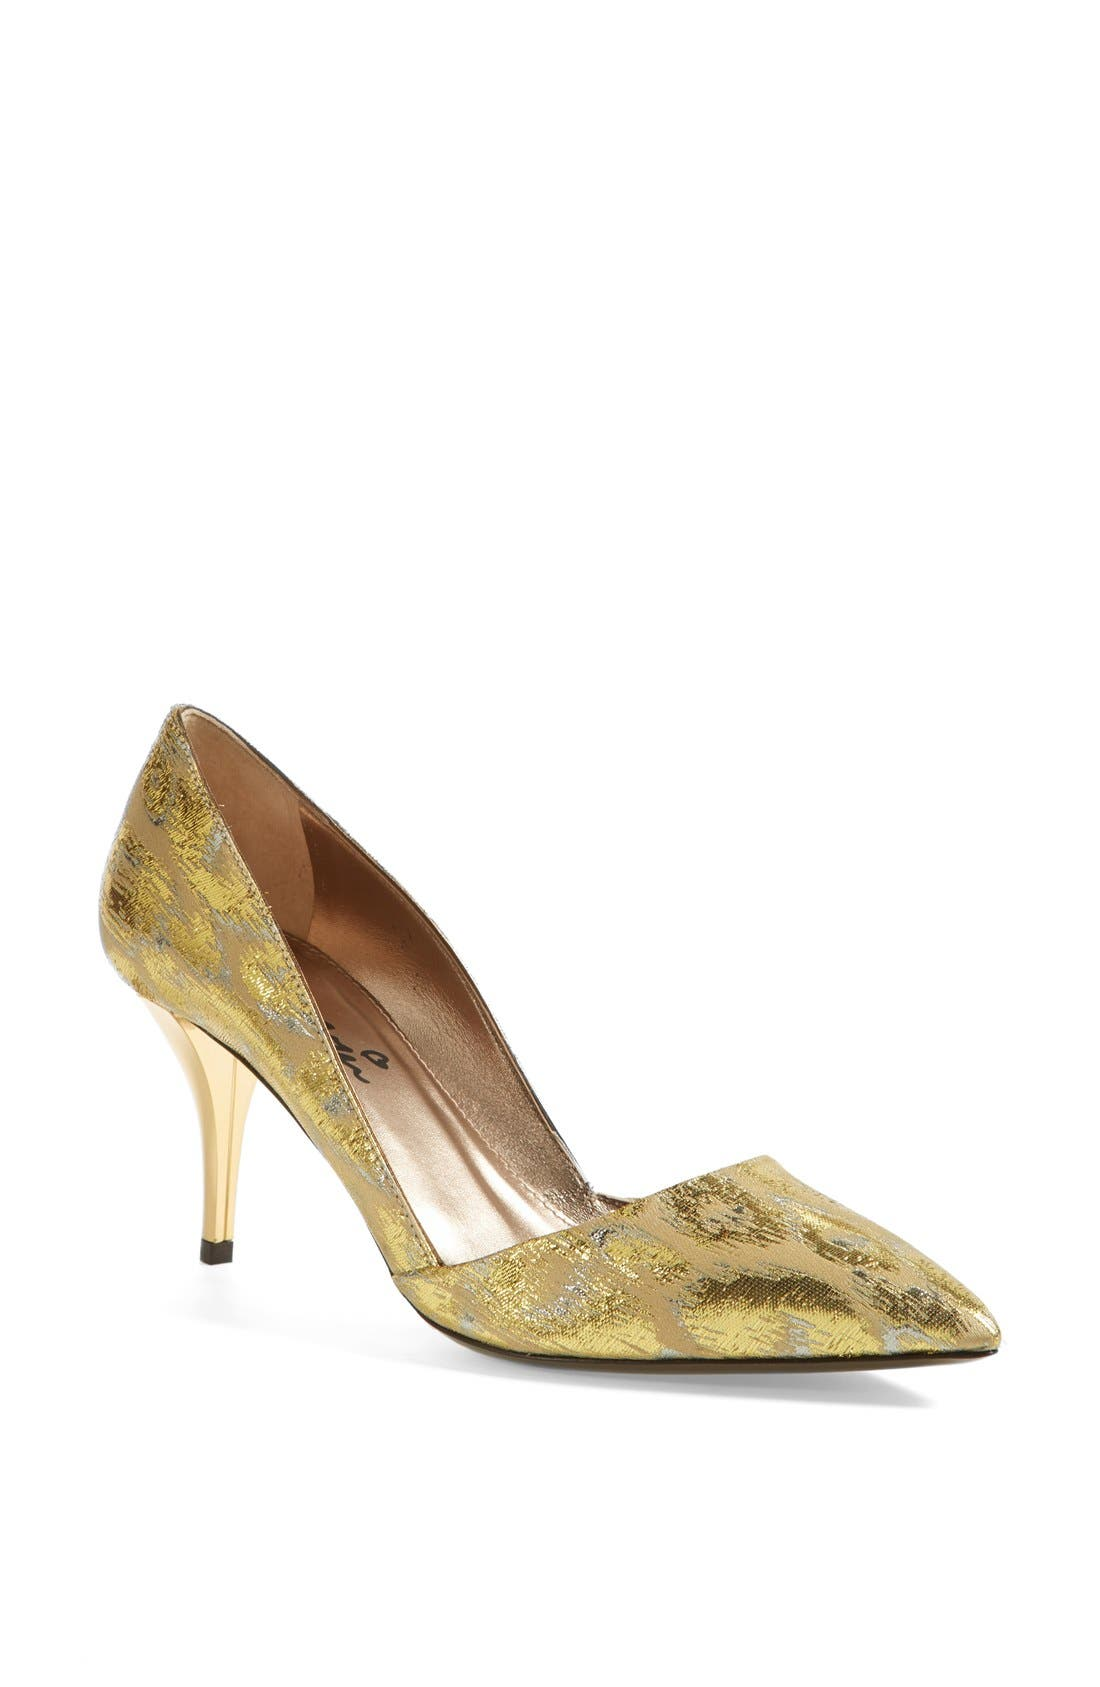 Alternate Image 1 Selected - Lanvin Metallic Jacquard Pump